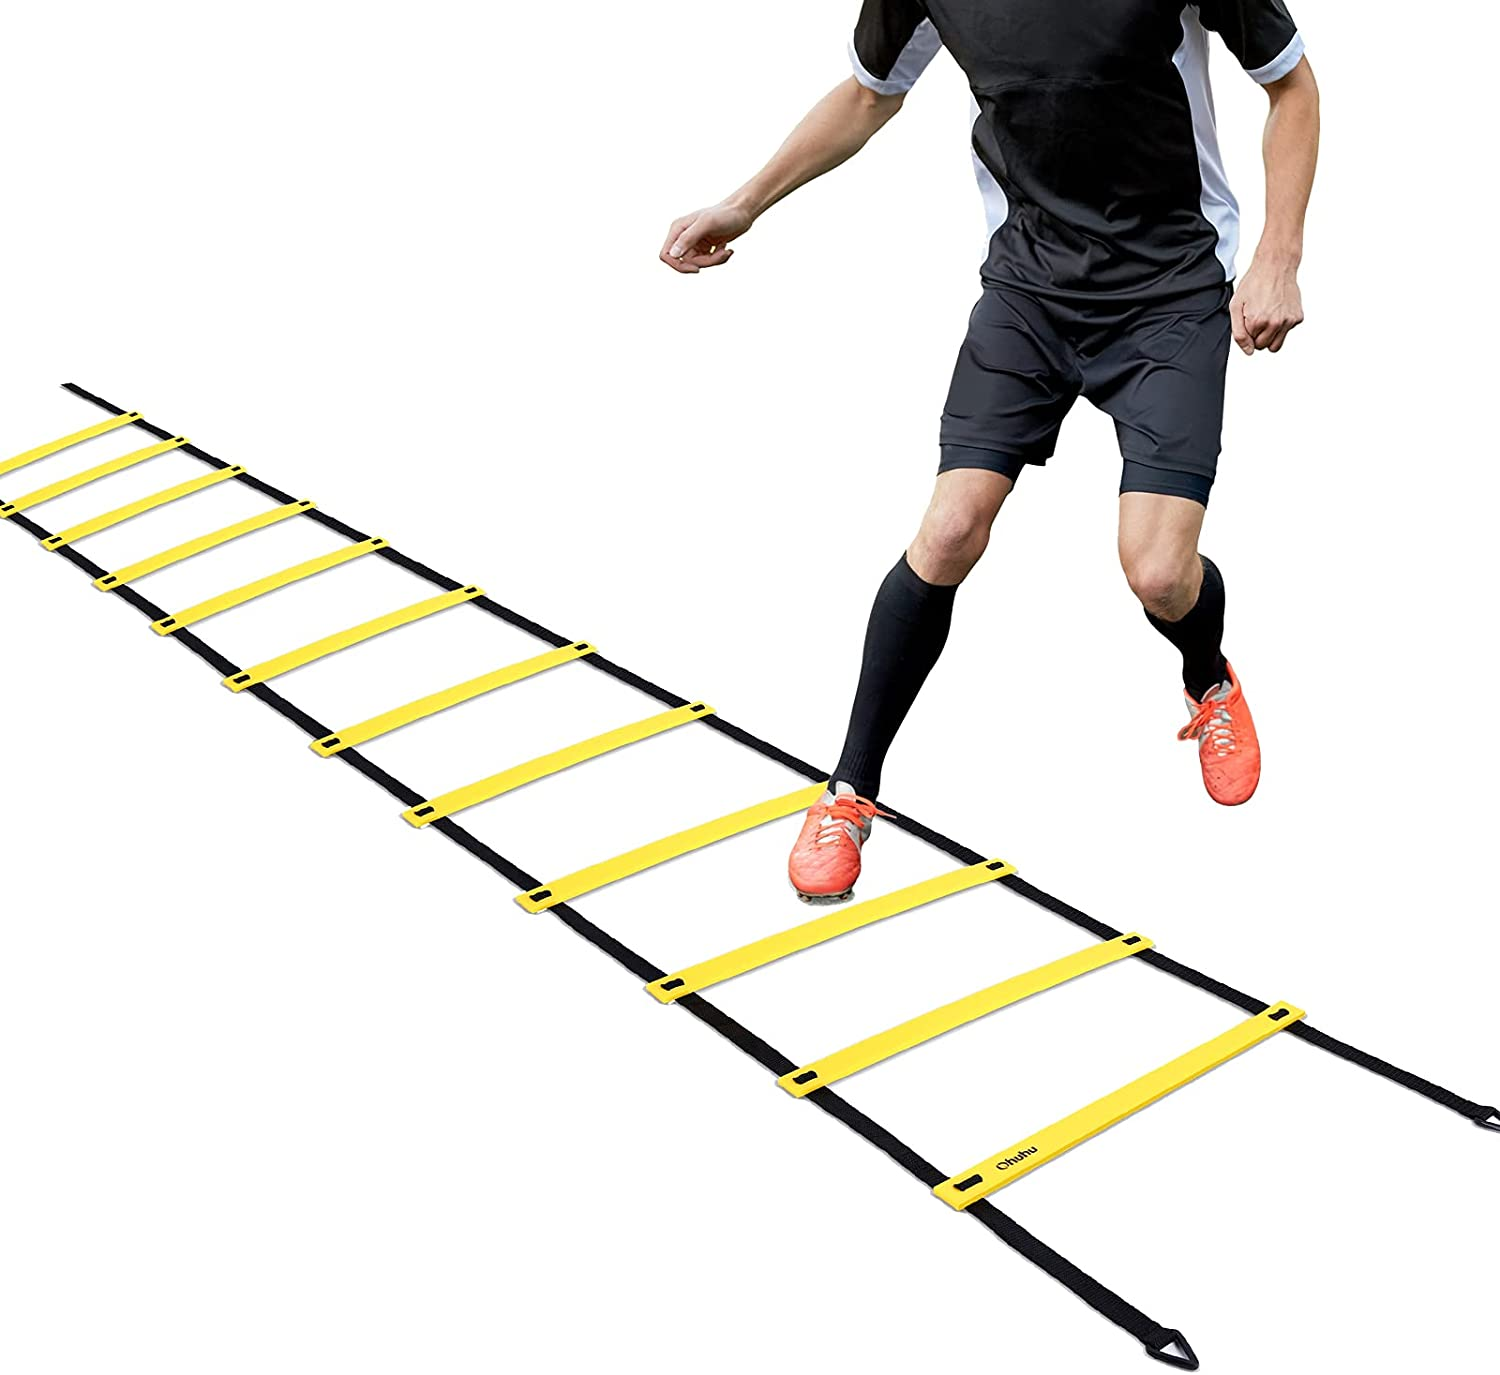 Oklahoma City Mall Ohuhu Agility Ladder Speed Import Training Exercise for Ladders Soccer